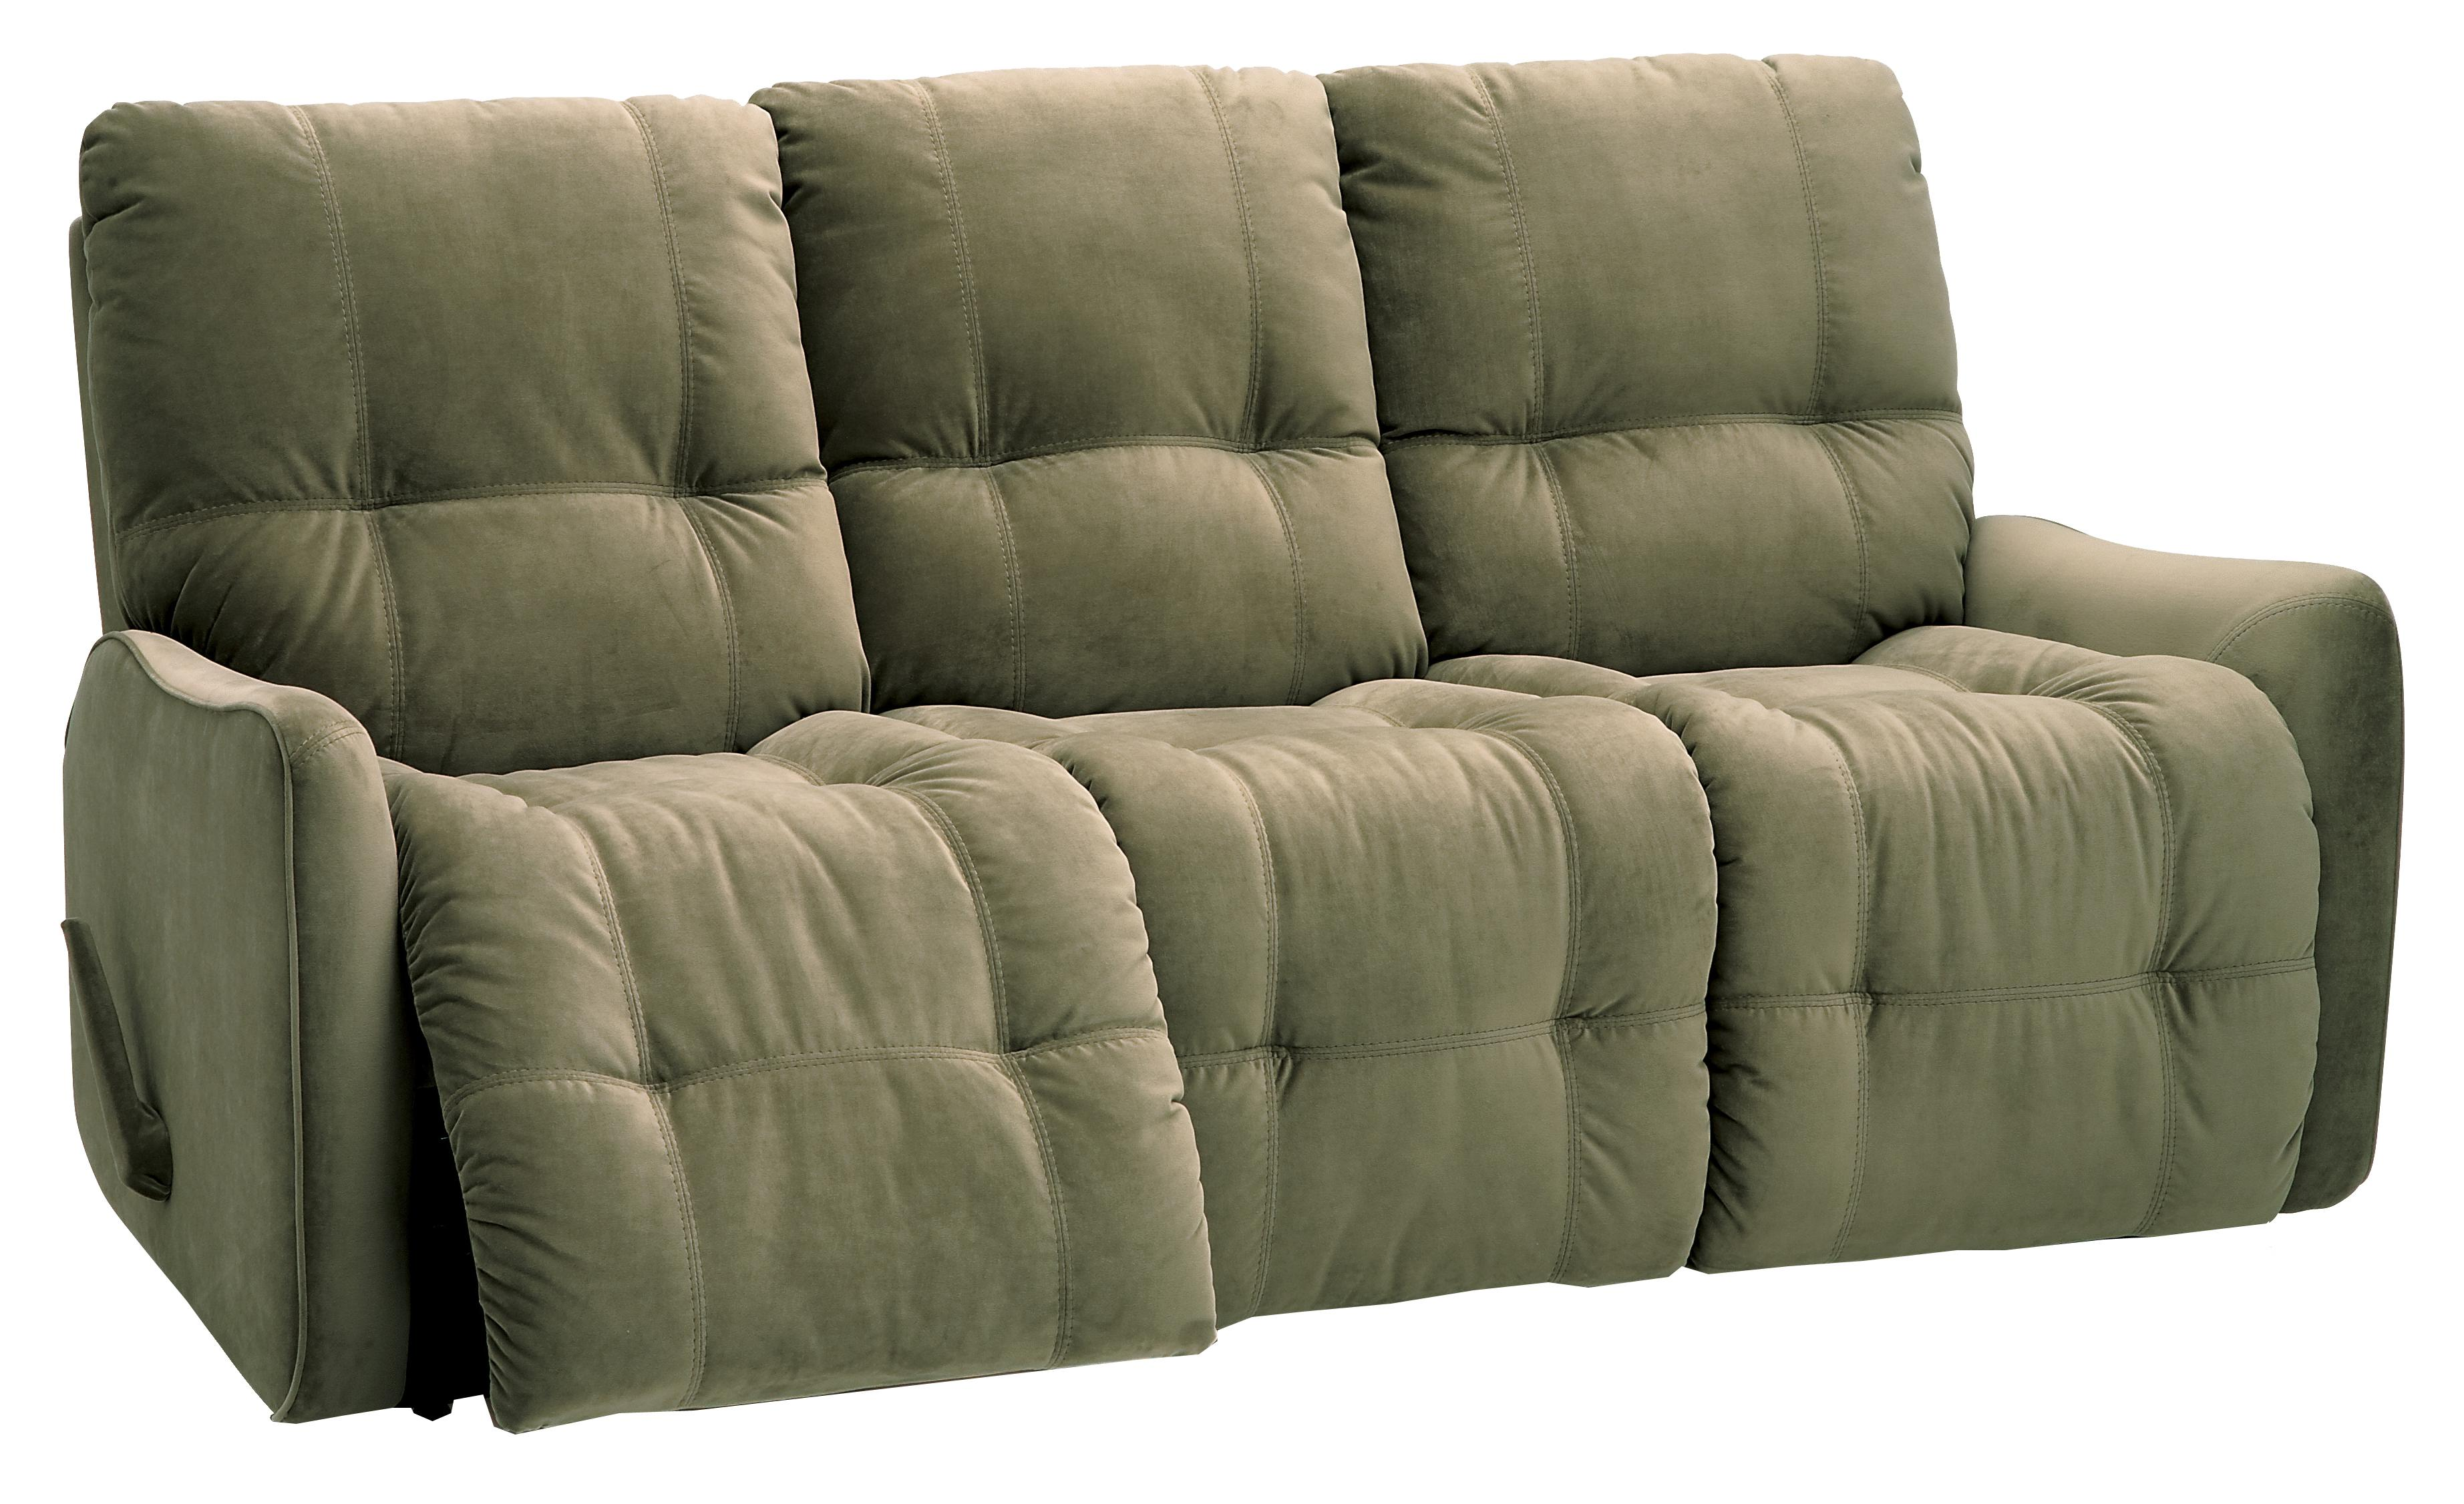 Palliser Bounty Power Sofa Recliner - Item Number: 46099-61